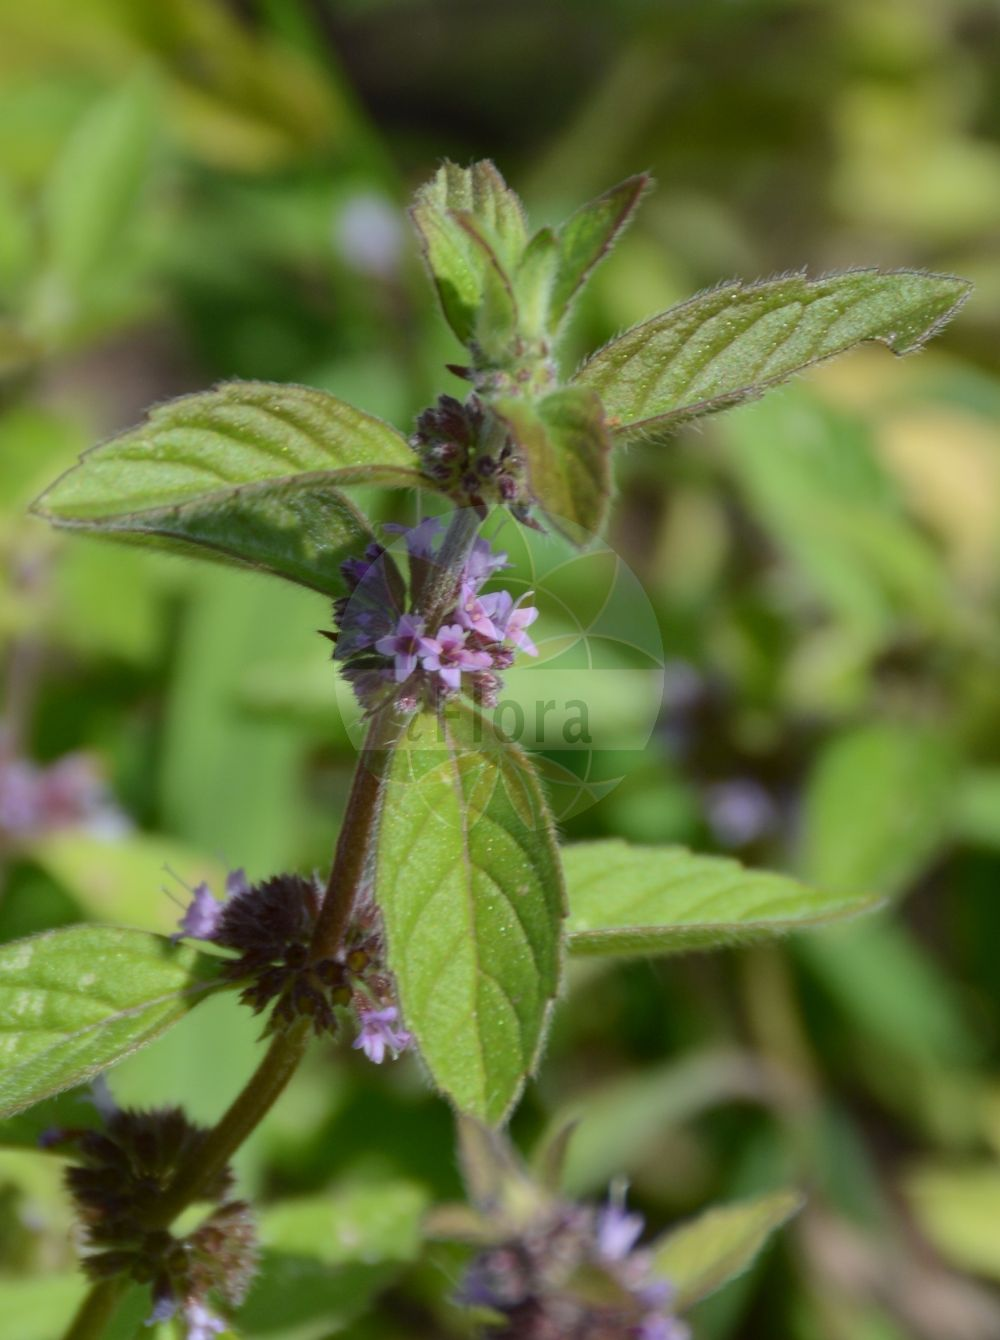 Foto von Mentha arvensis (Acker-Minze - Corn Mint). Das Foto wurde in Wuerzburg, Bayern, Deutschland aufgenommen. ---- Photo of Mentha arvensis (Acker-Minze - Corn Mint).The picture was taken in Wuerzburg, Bayern, Germany.(Mentha arvensis,Acker-Minze,Corn Mint,Calamintha arvensis,,Quirl-Minze,Wild Mint,Field Mint,Mentha,Minze,Mint,Lamiaceae,Lippenbluetengewaechse;Lippenbluetler,Nettle family)